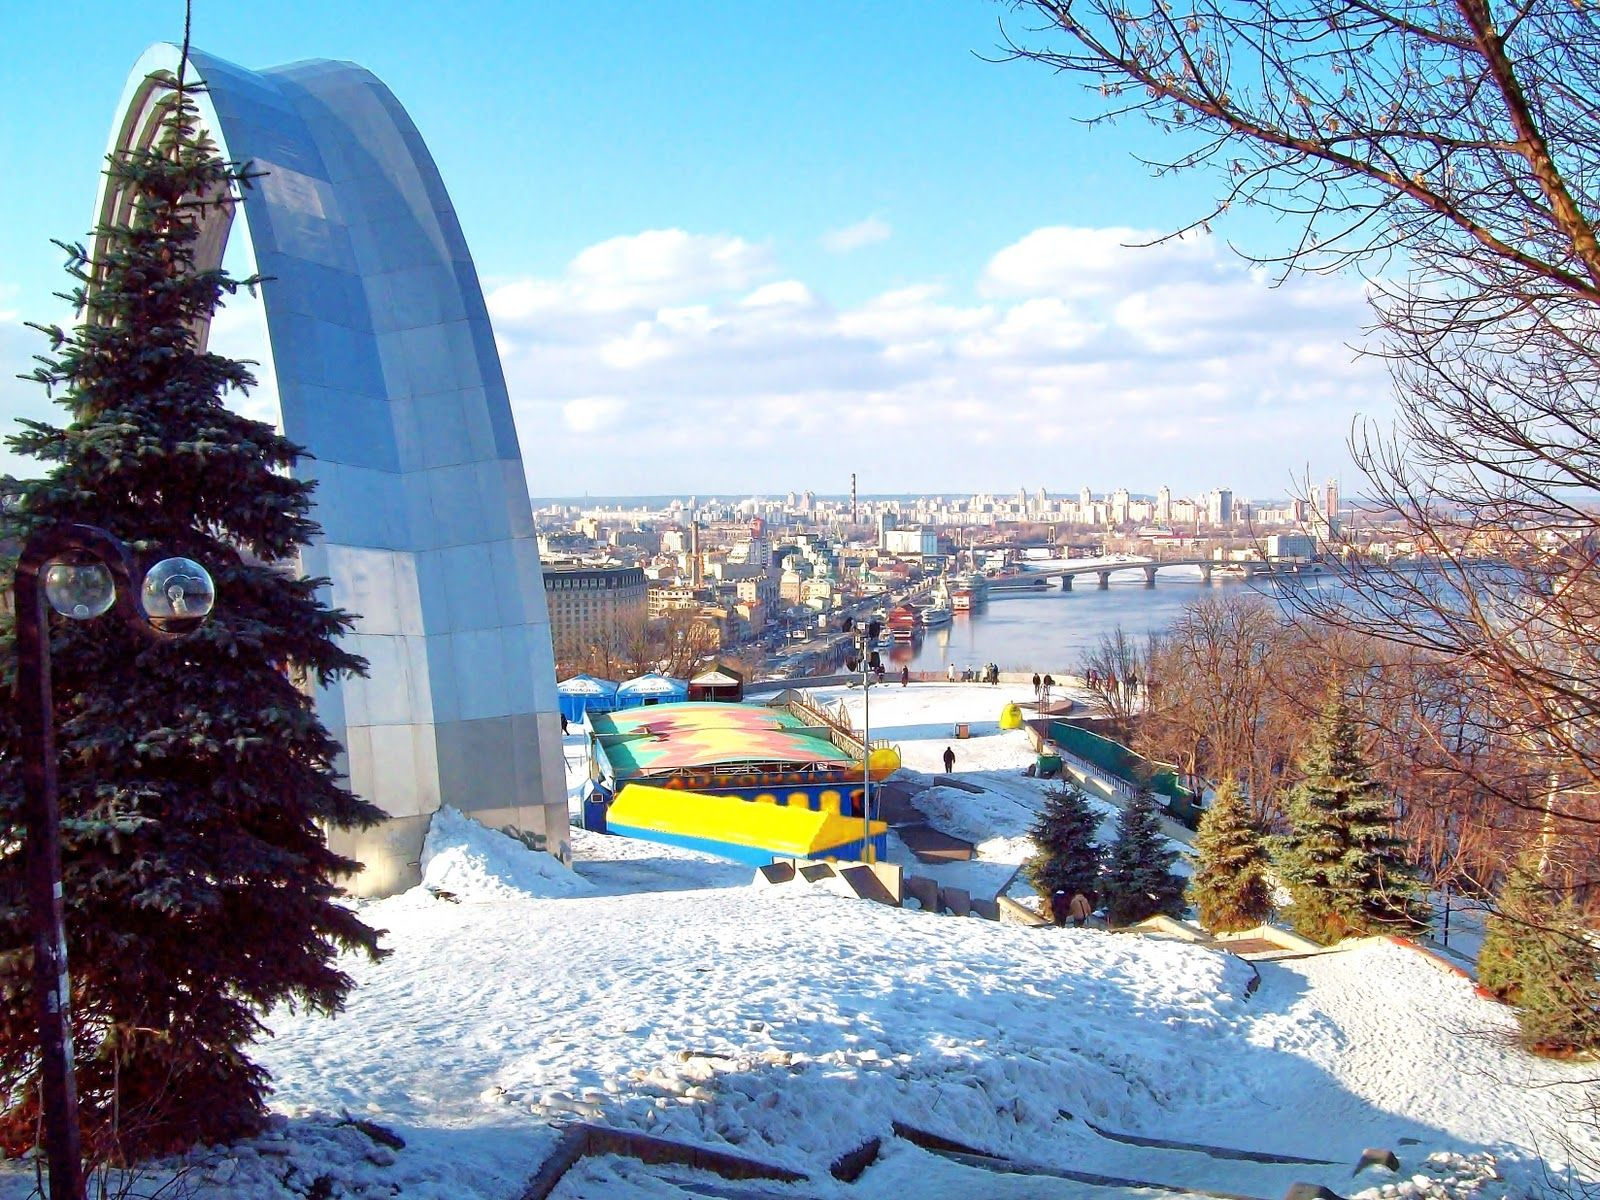 View of Friendship Arch in Kiev